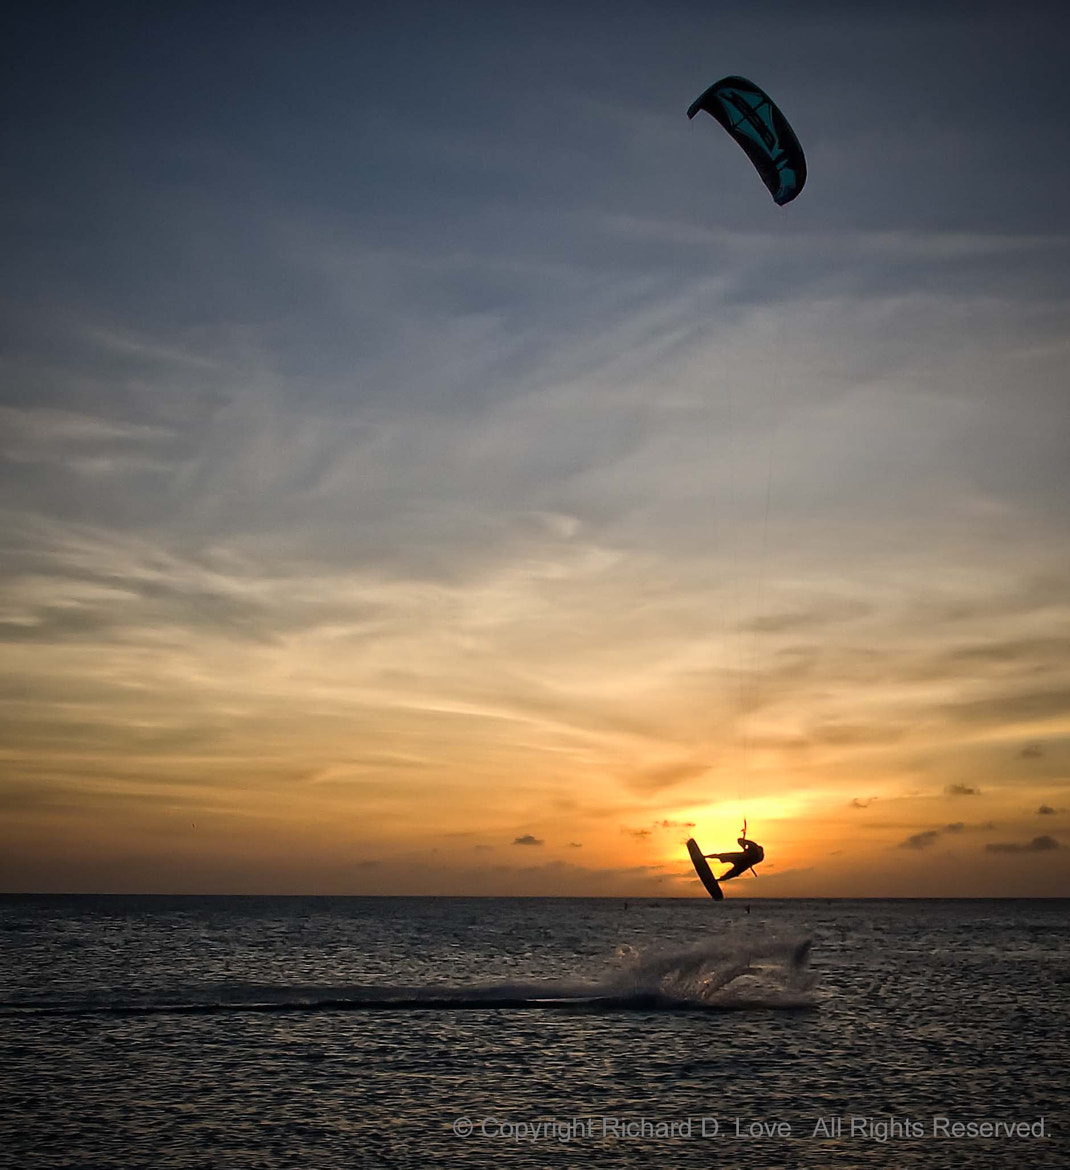 Photograph Kitesurfing in Aruba! by Richard Love on 500px